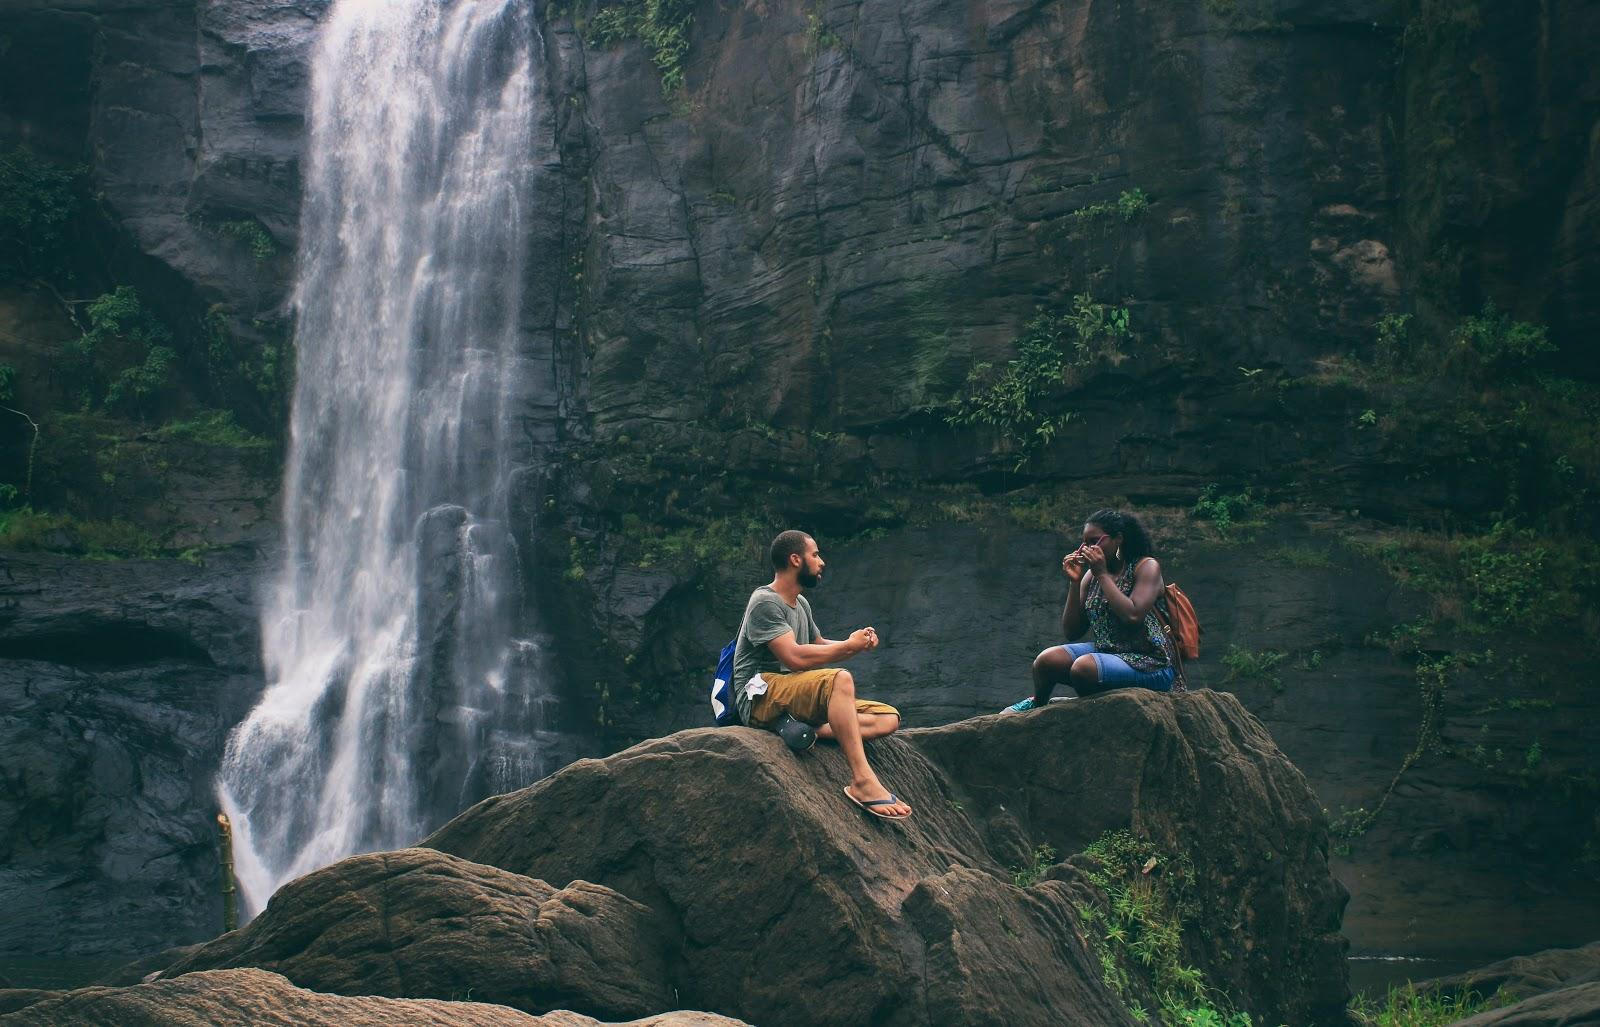 a girl and a boy talking by a waterfall